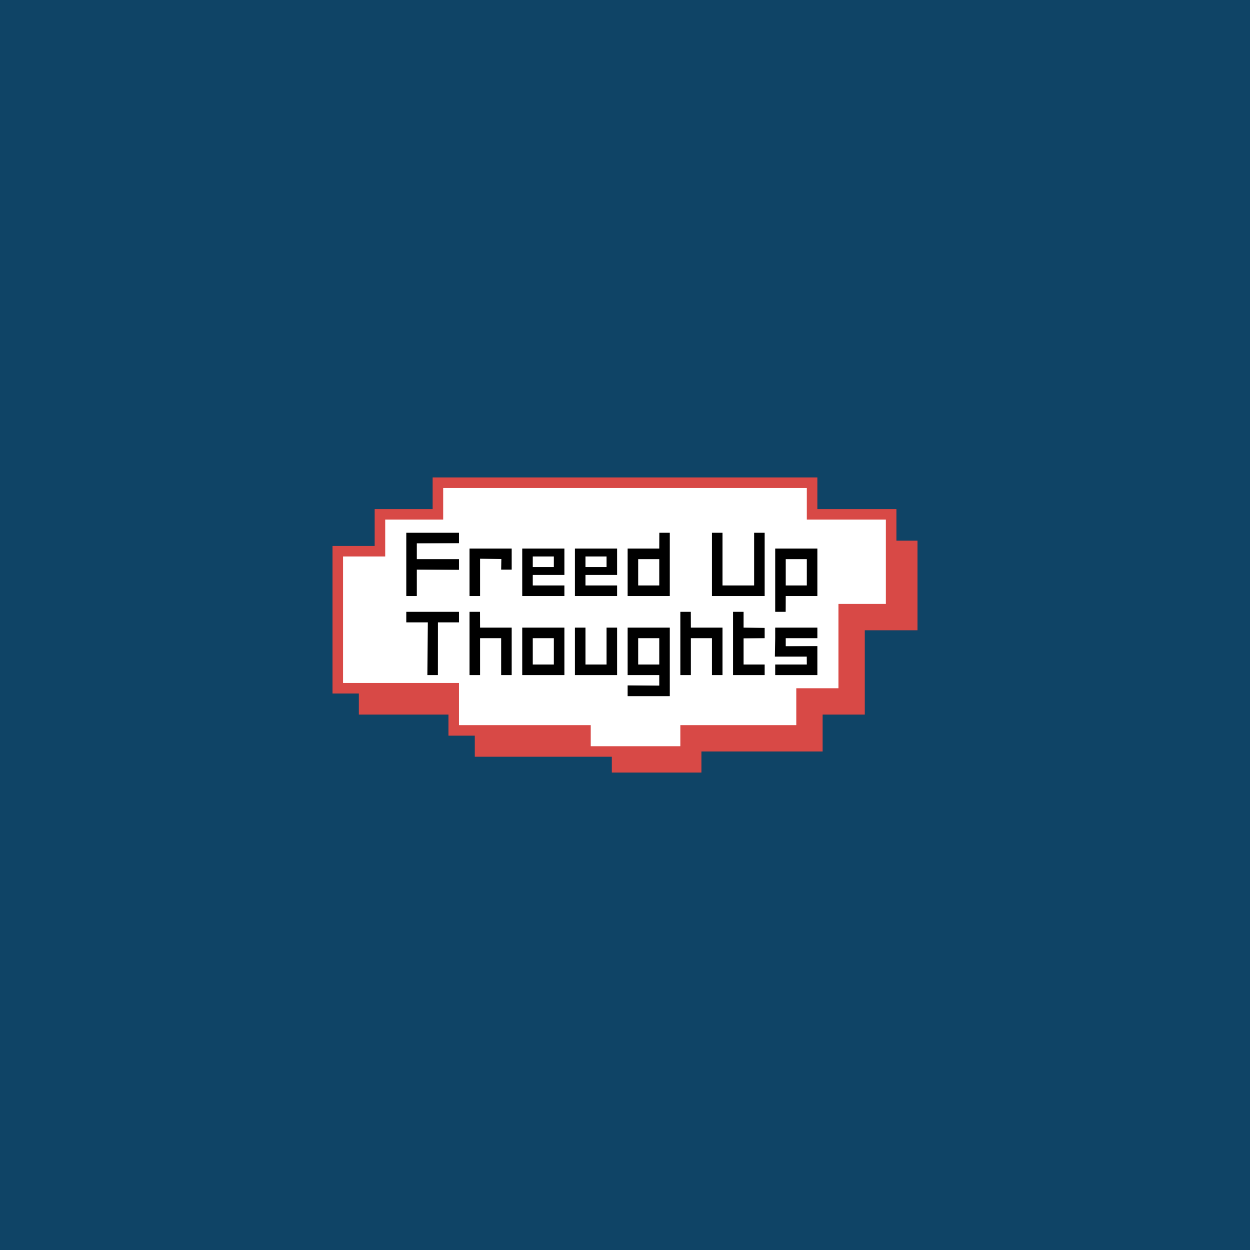 Freed Up Thoughts